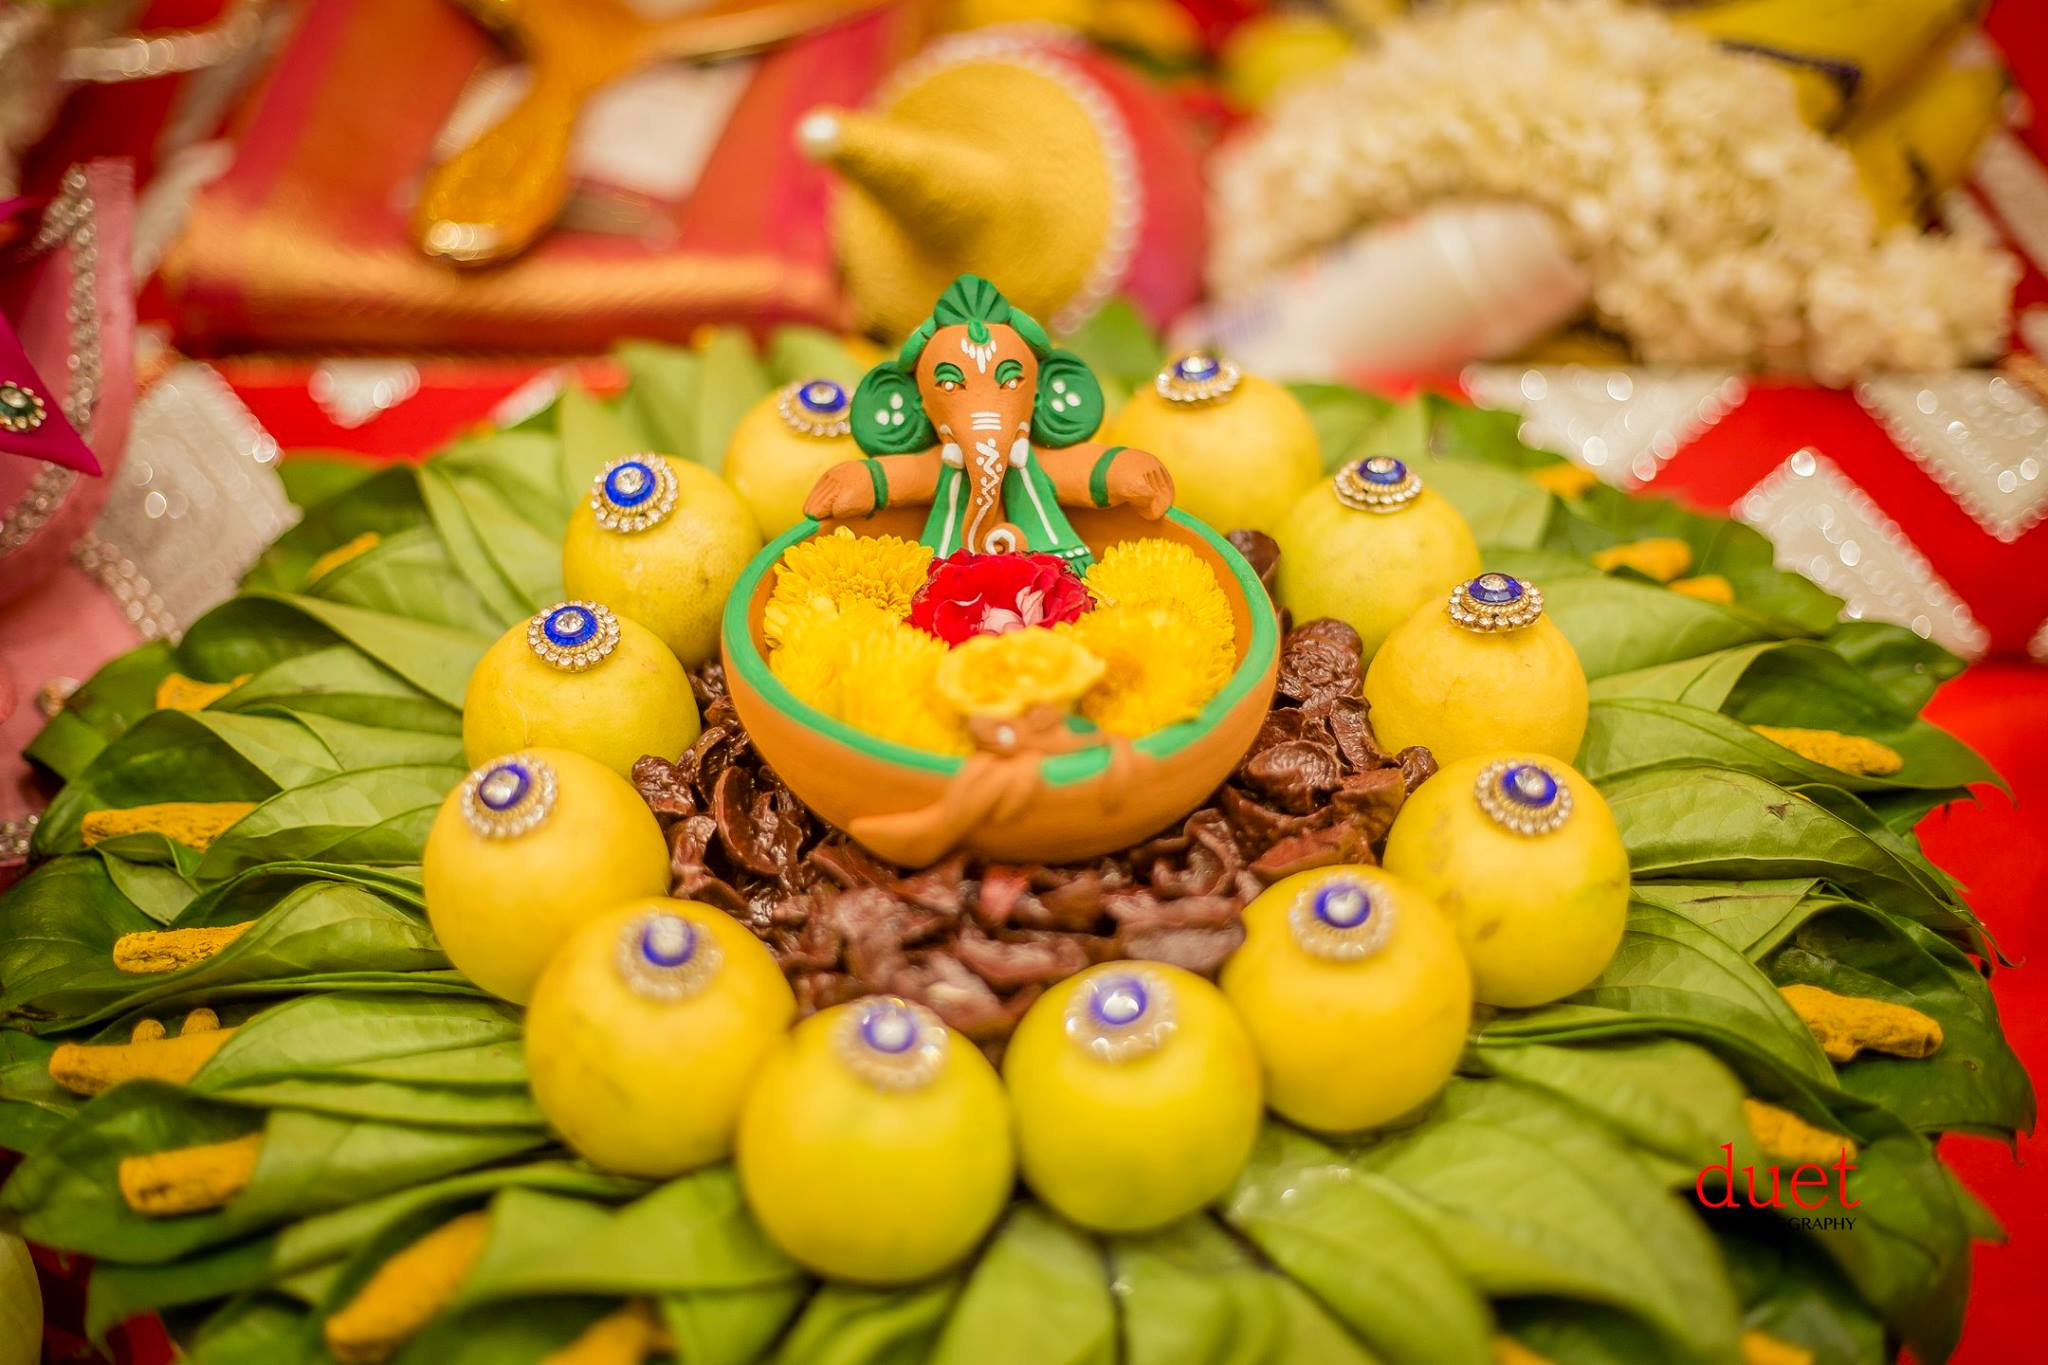 Ganesa in the middle of decorated oranges